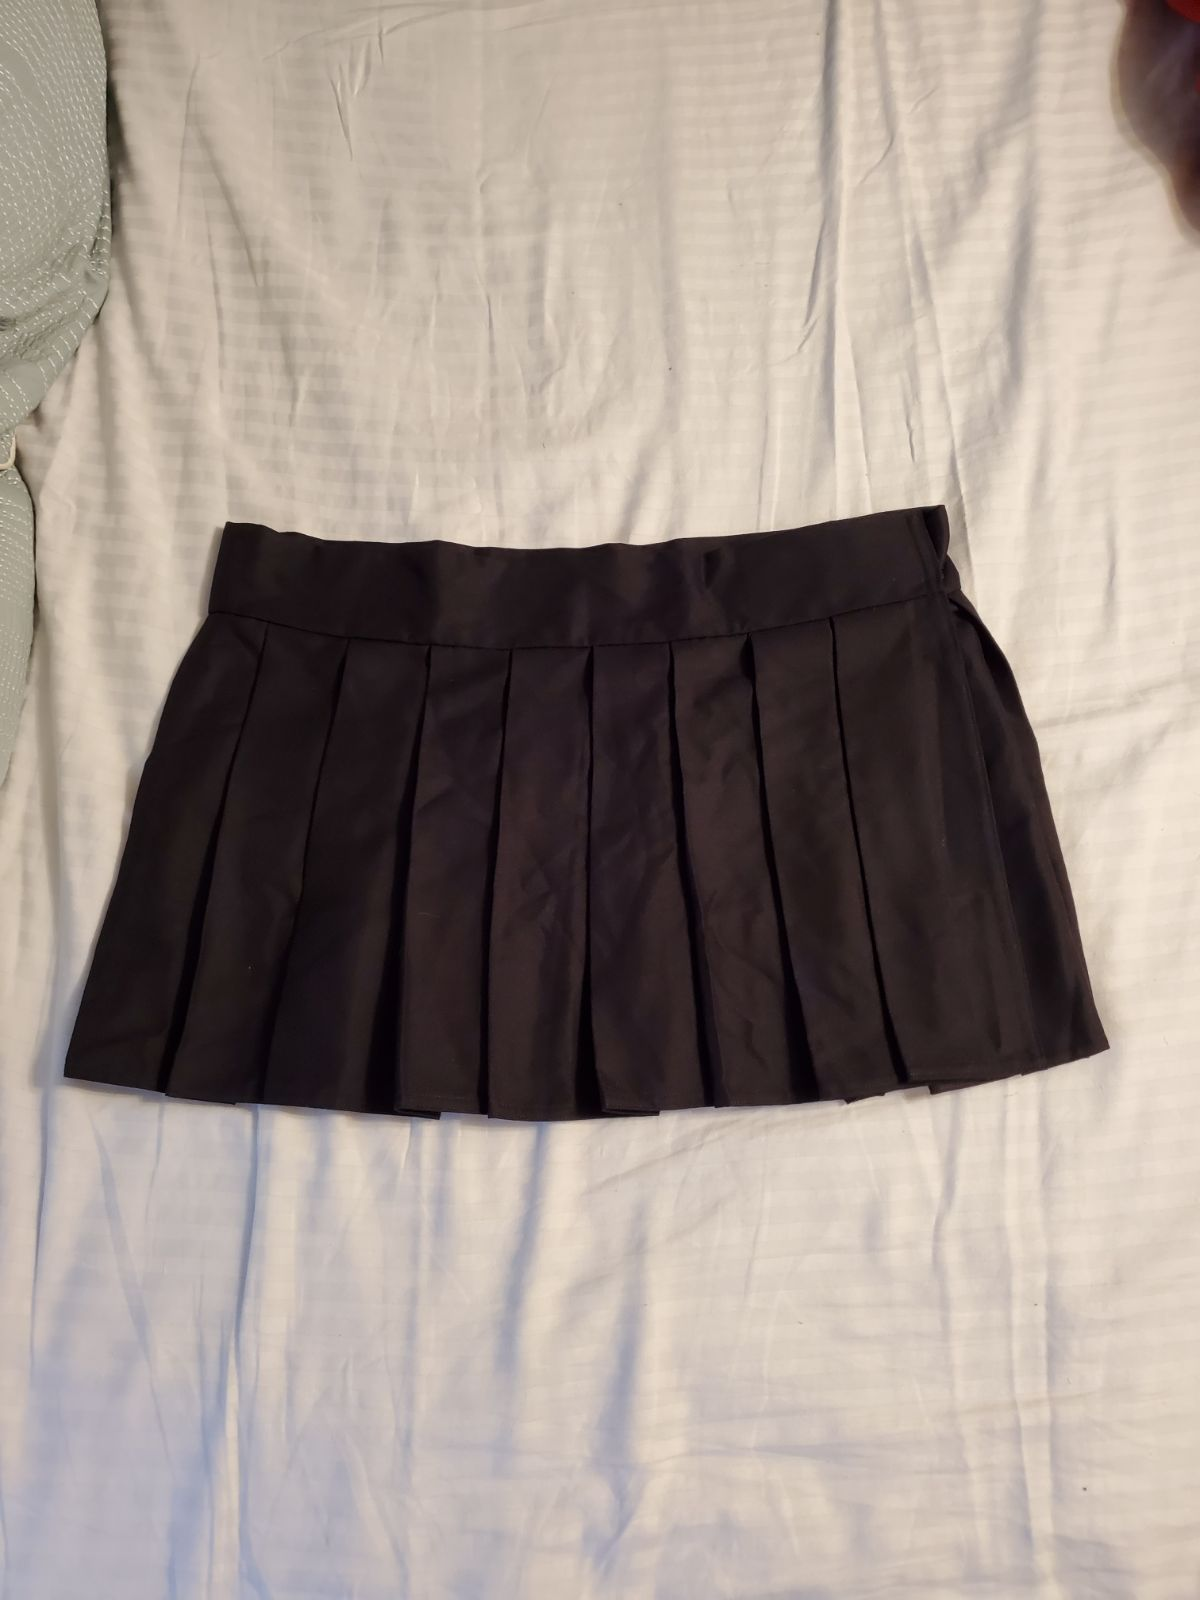 Donald Seneca pleated skirt Plus size 2